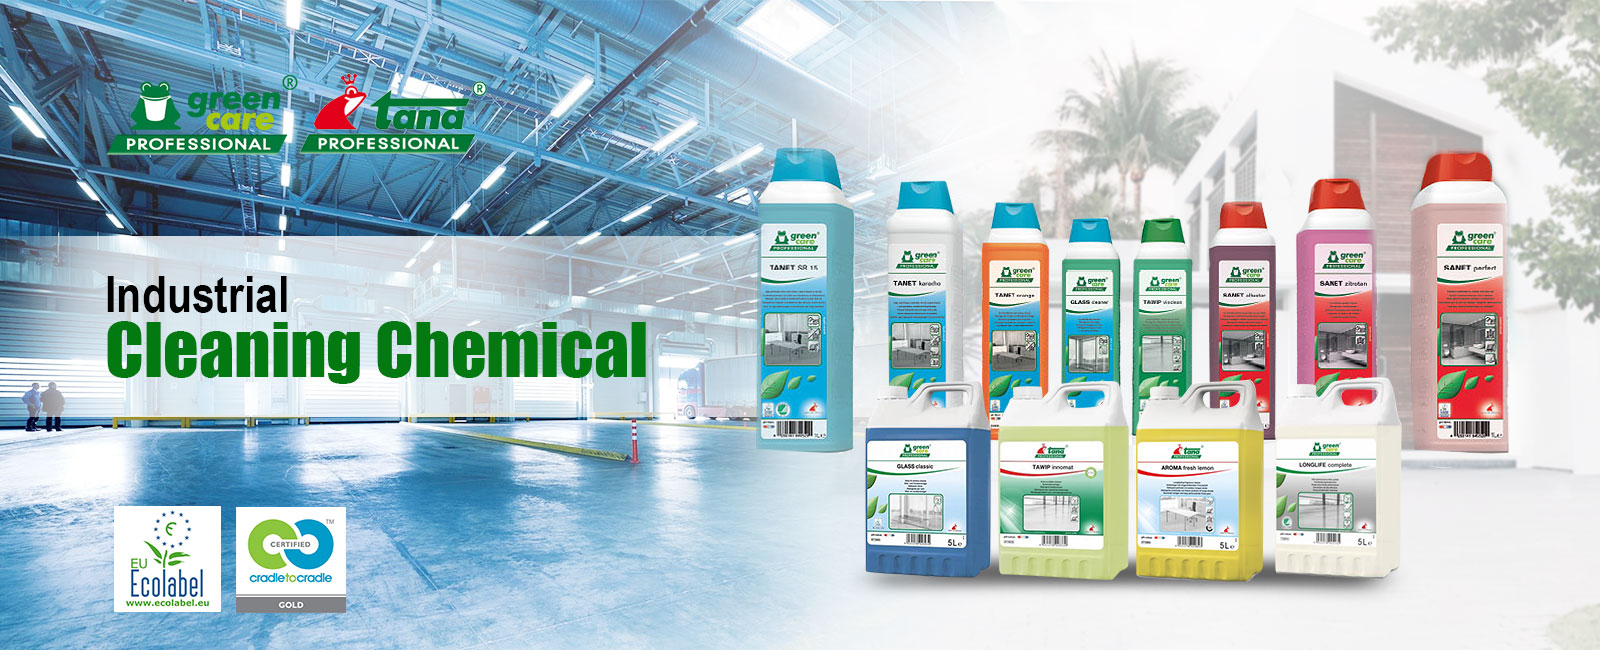 Industrial Cleaning Chemical Johor Bahru Jb Cleaning